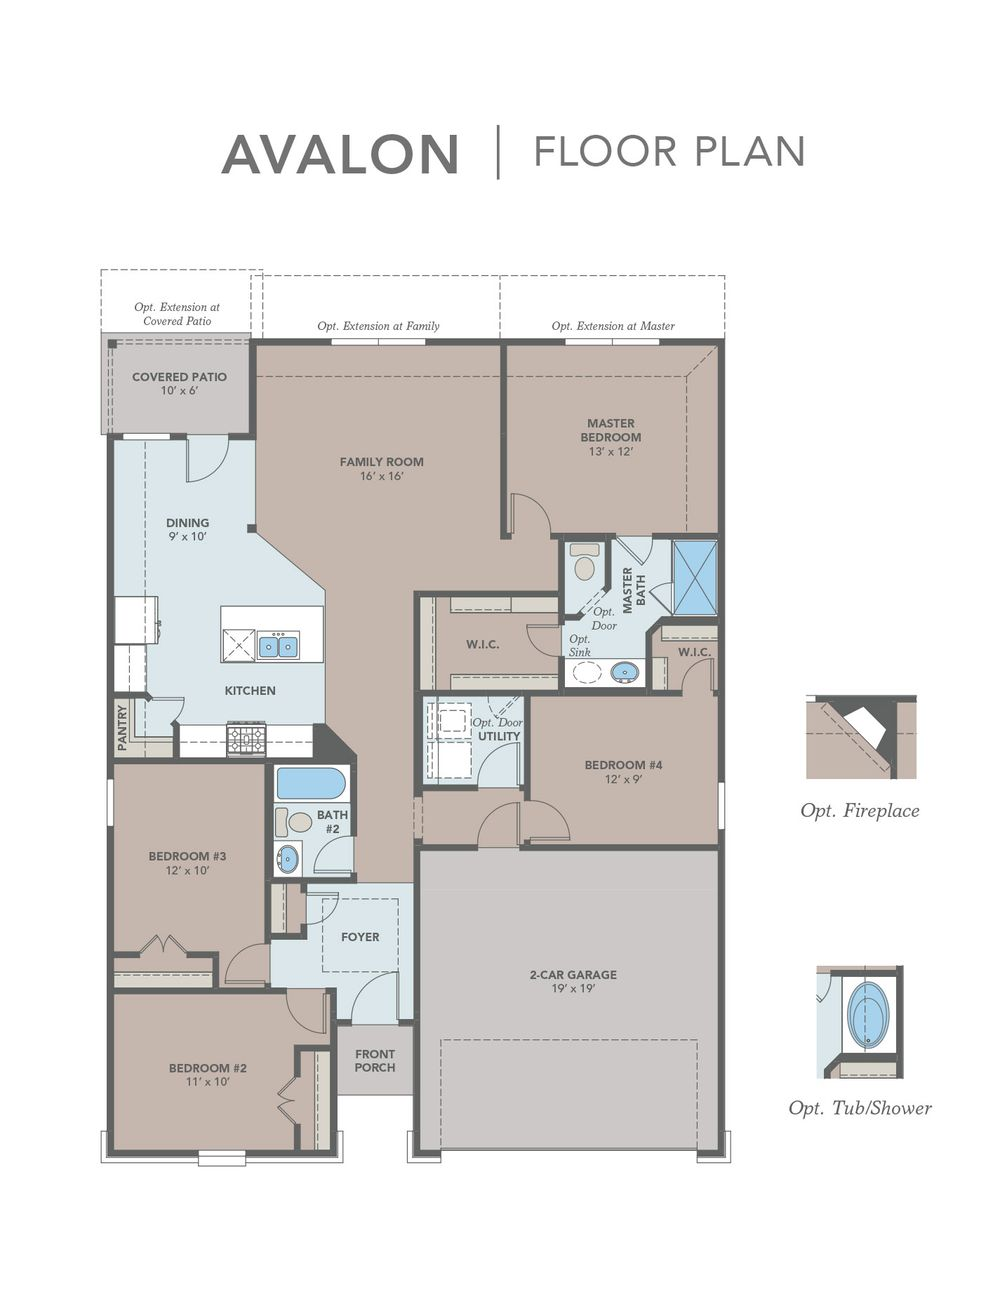 Find floor plans by address home alone house floor plan for Floor plans by address